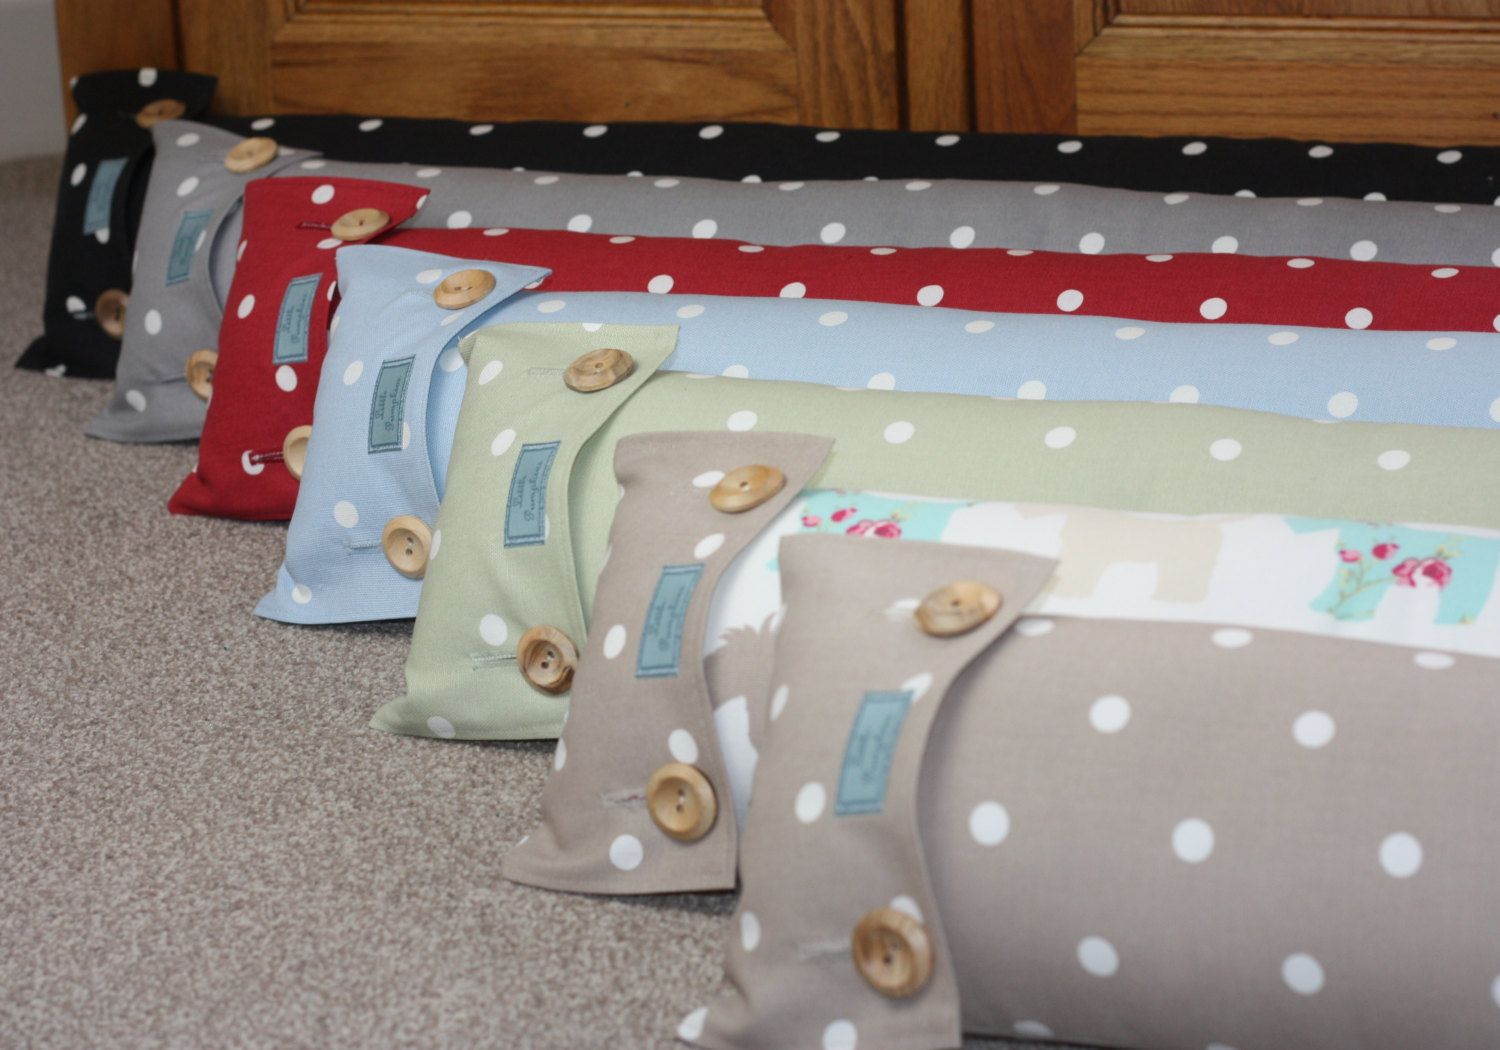 Draught Excluder Draft Excluder Shabby Chic Fabric Handmade In Polka Dot Spotty In Taupe Beige Grey Green Red Scottie Dog Shabby Chic Fabric Draught Excluder Shabby Chic